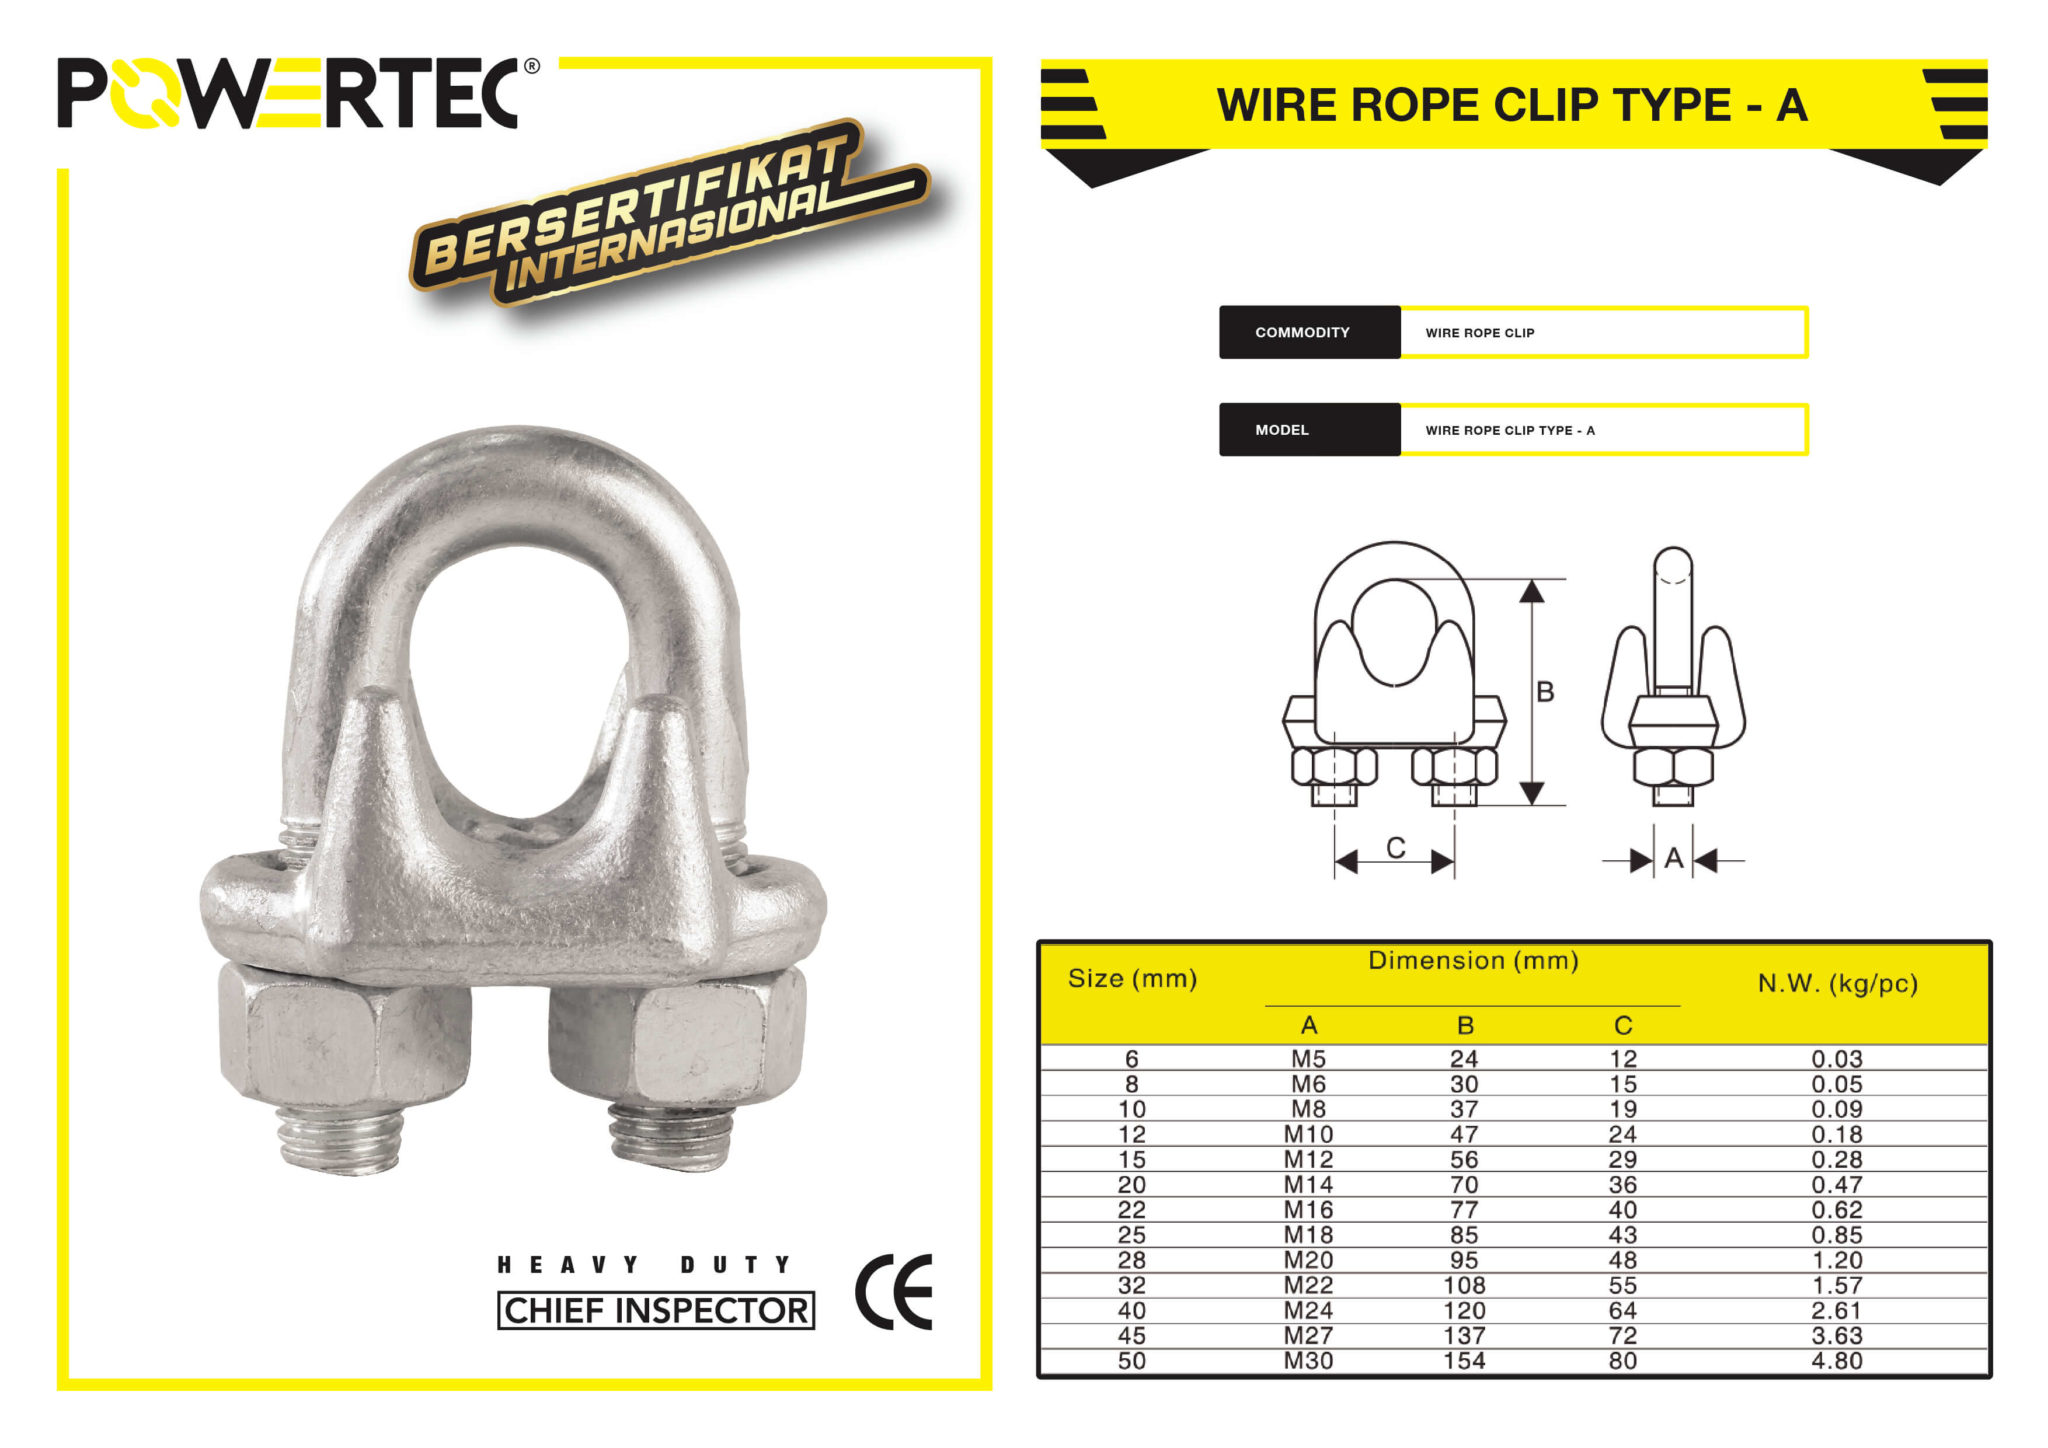 POWERTEC WIRE ROPE CLIP TYPE-A BROCHURE